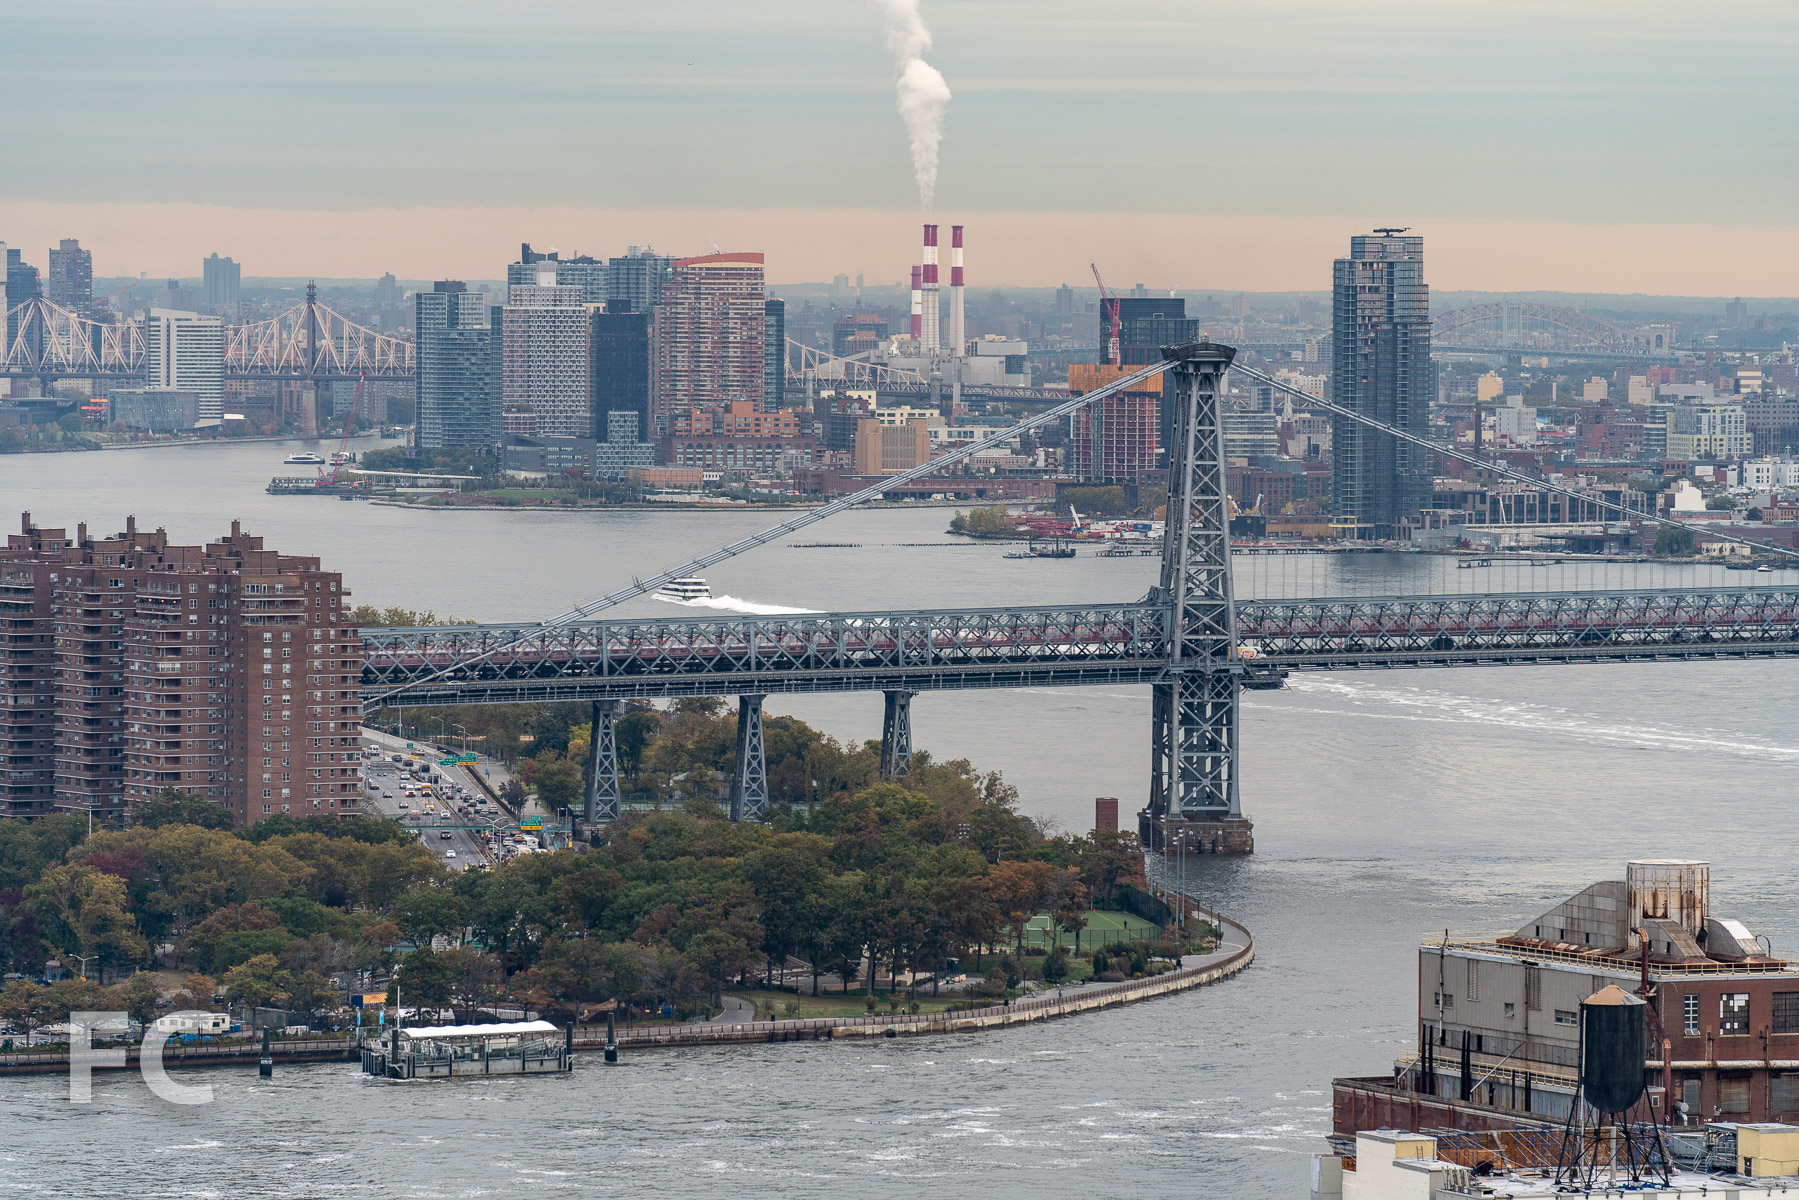 View towards the Lower East Side and the Brooklyn and Queens waterfront from the residential amenity terrace.